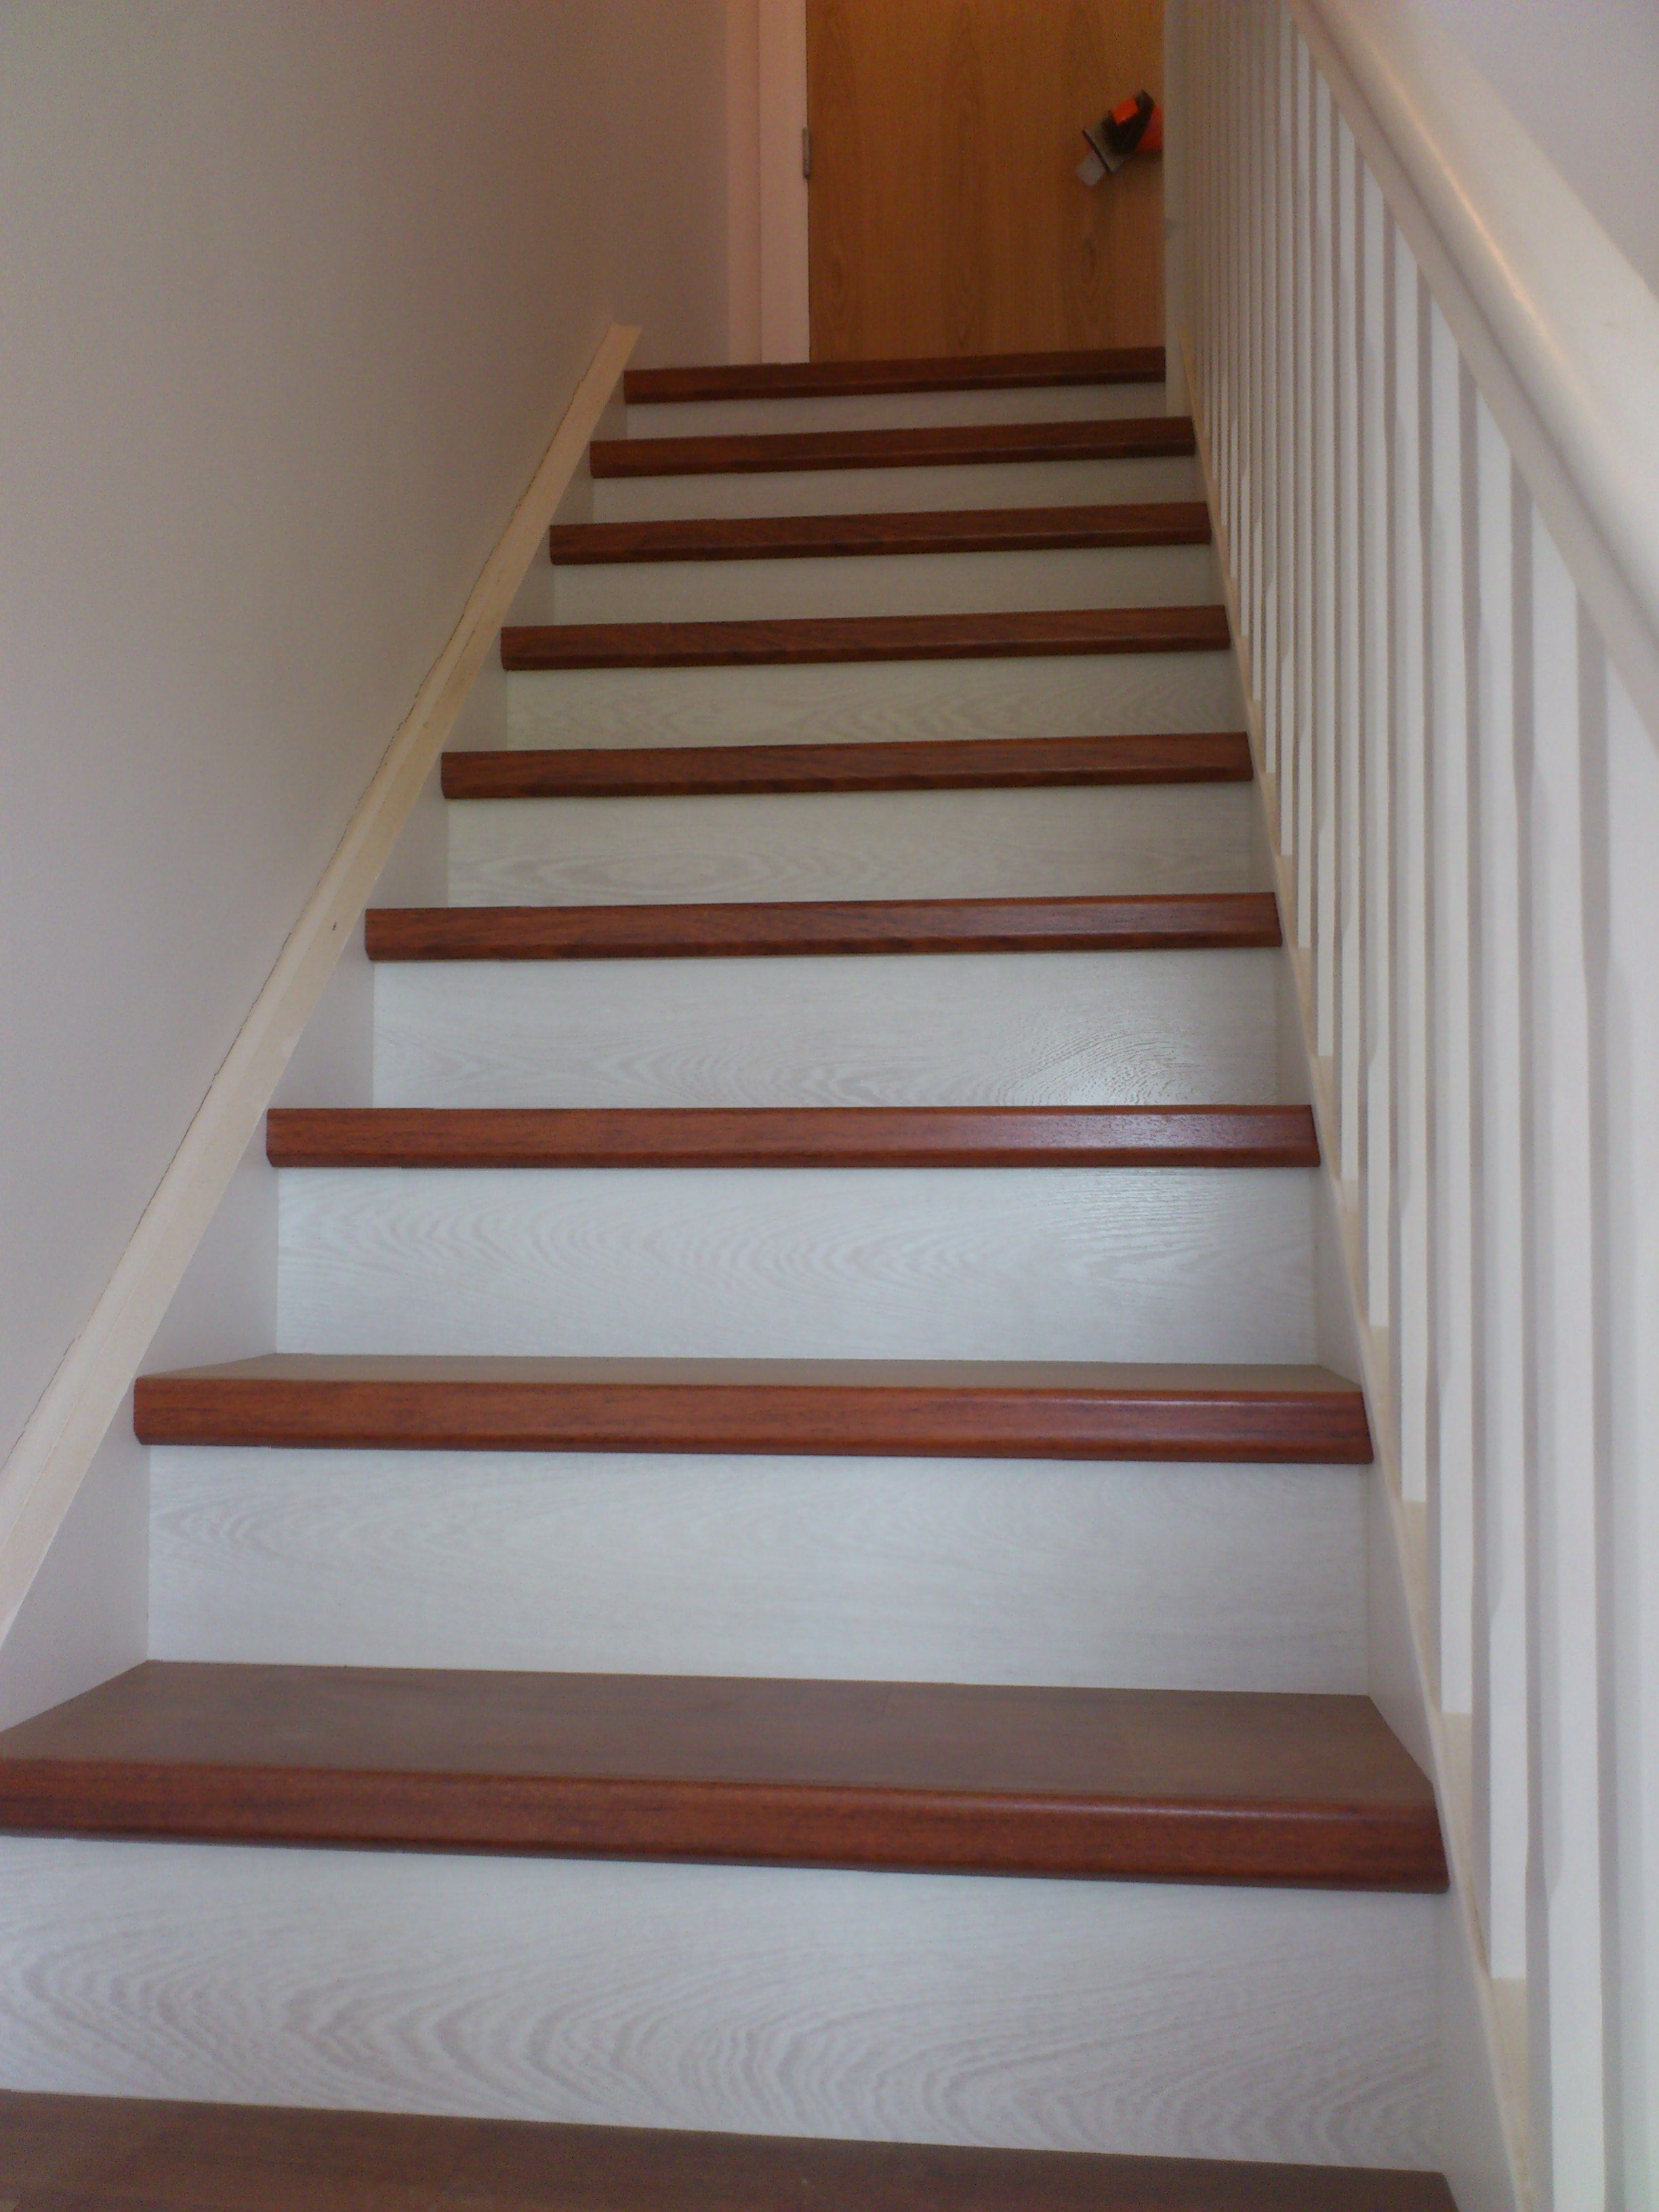 QuickStep laminate stairs Michael Bitto , info